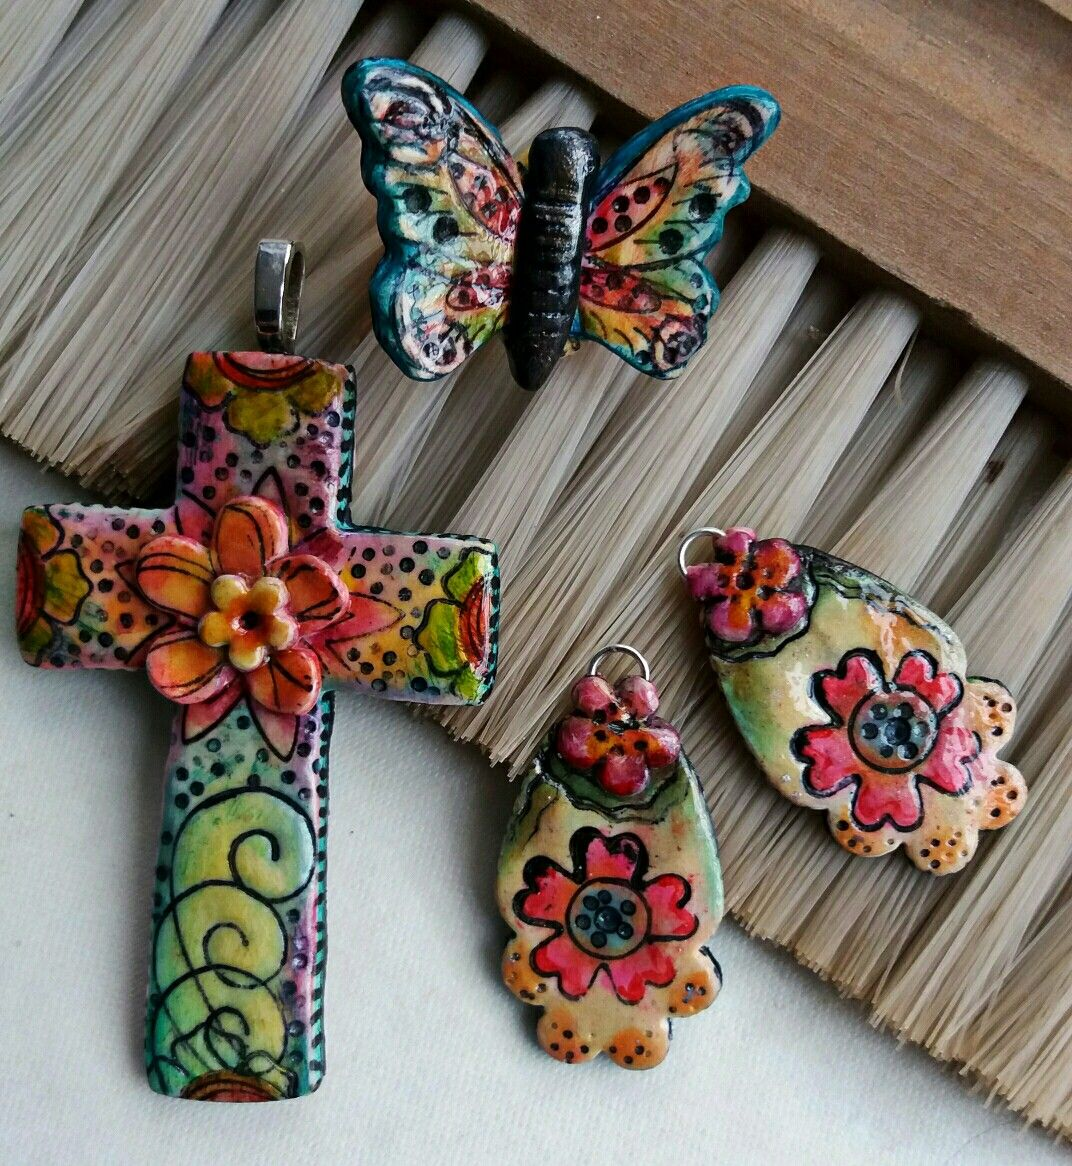 Polymer clay pendant, earrings and ring by Linda Carmichael NZ